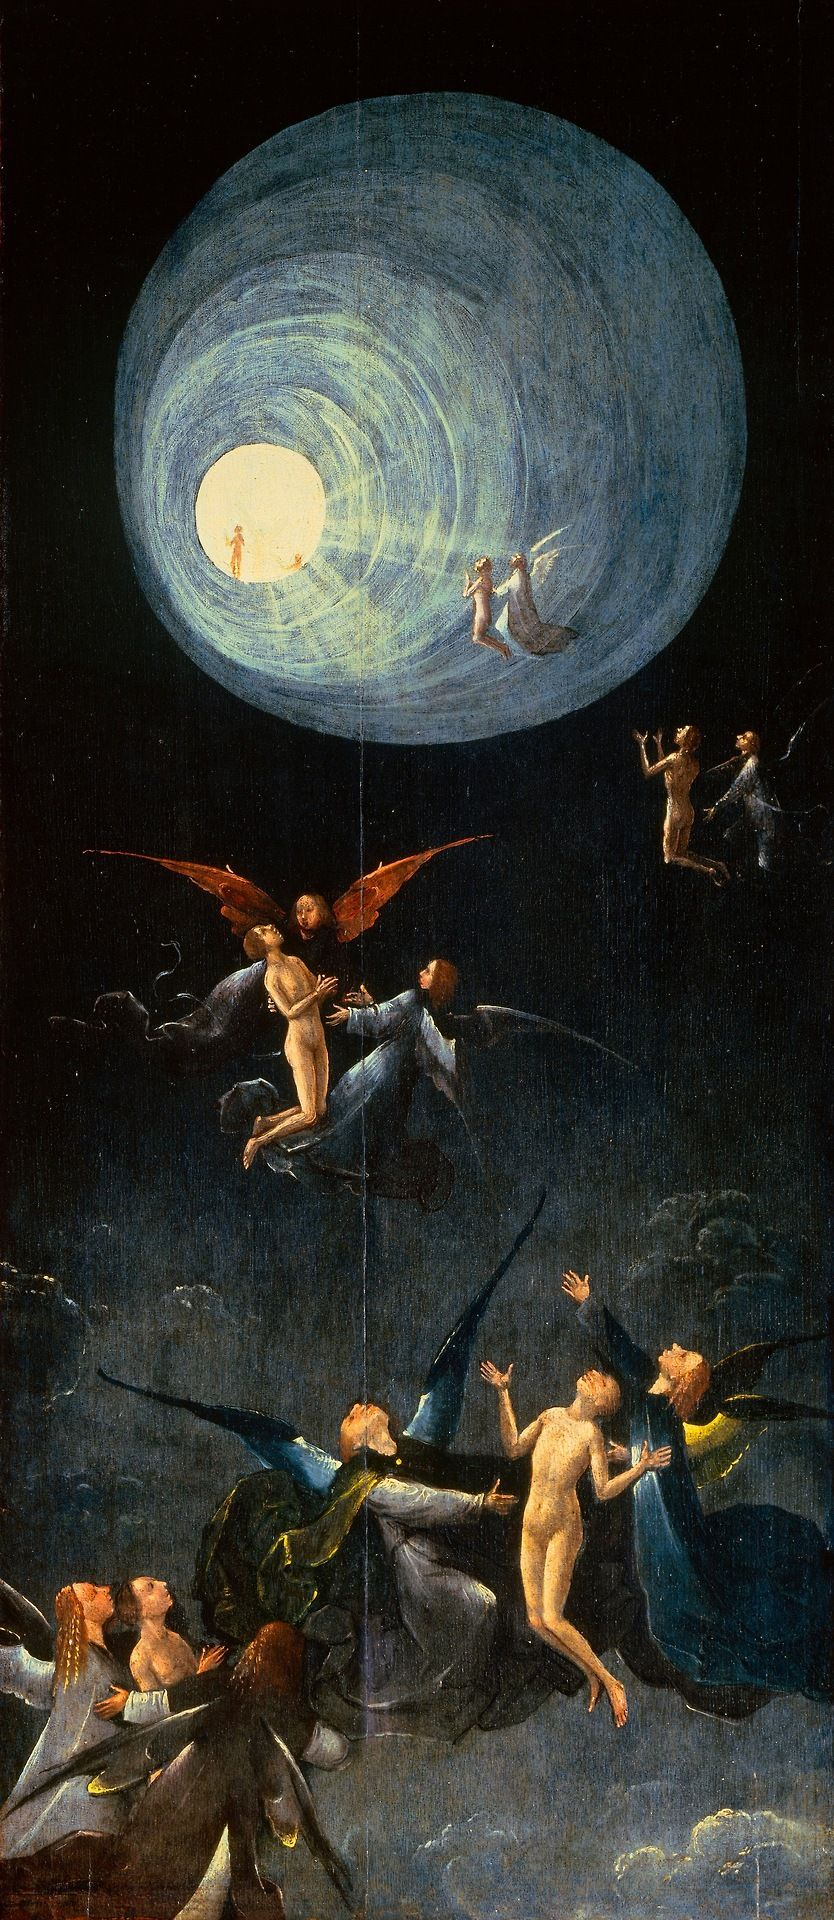 Hieronymus Bosch, Ascent of the Blessed. Oil on panel completed sometime between 1490 and 1516